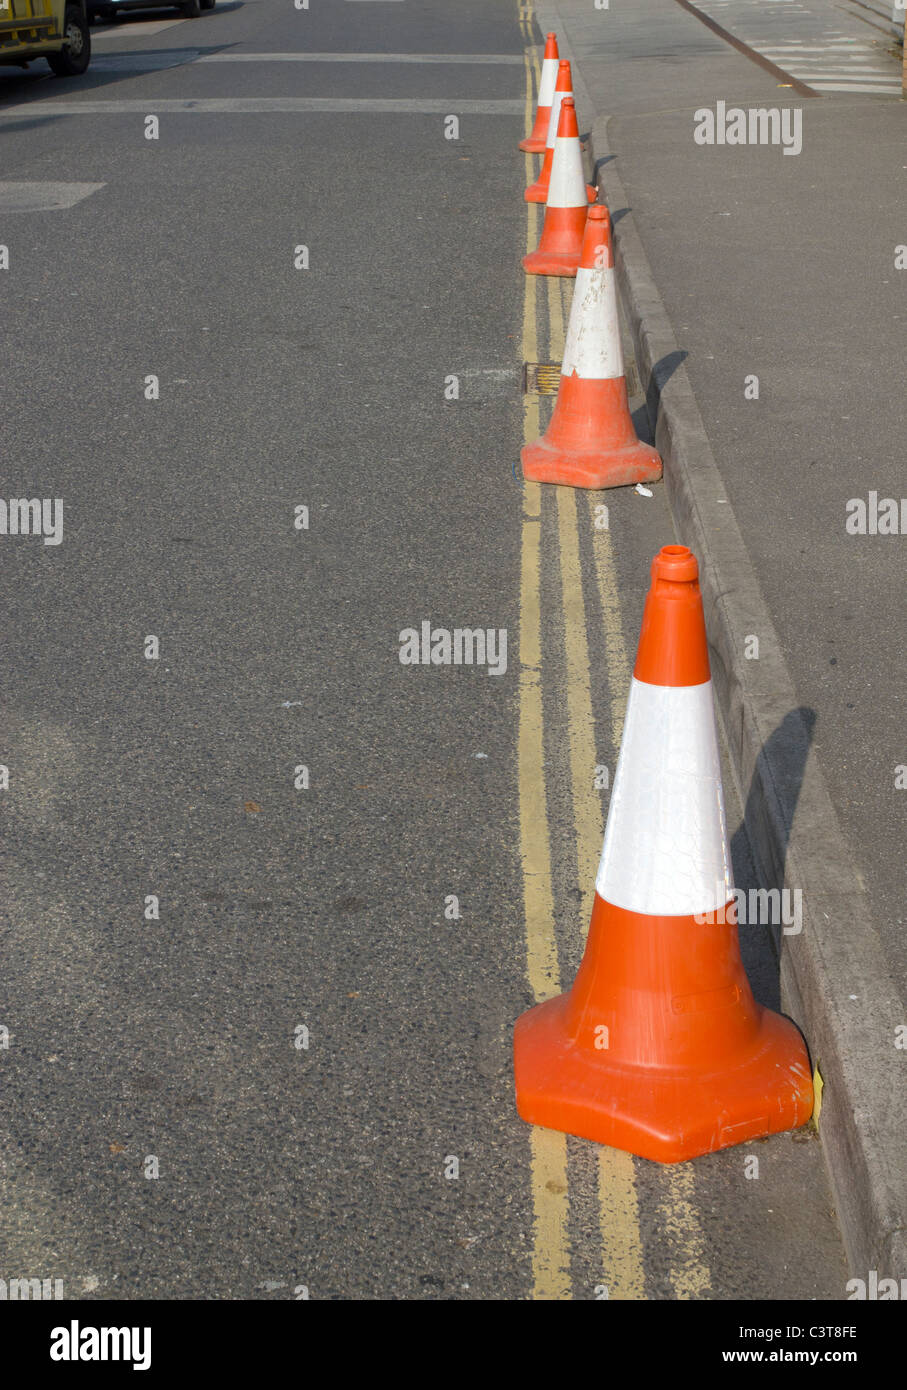 A row of 5 police traffic cones on double yellow lines. - Stock Image